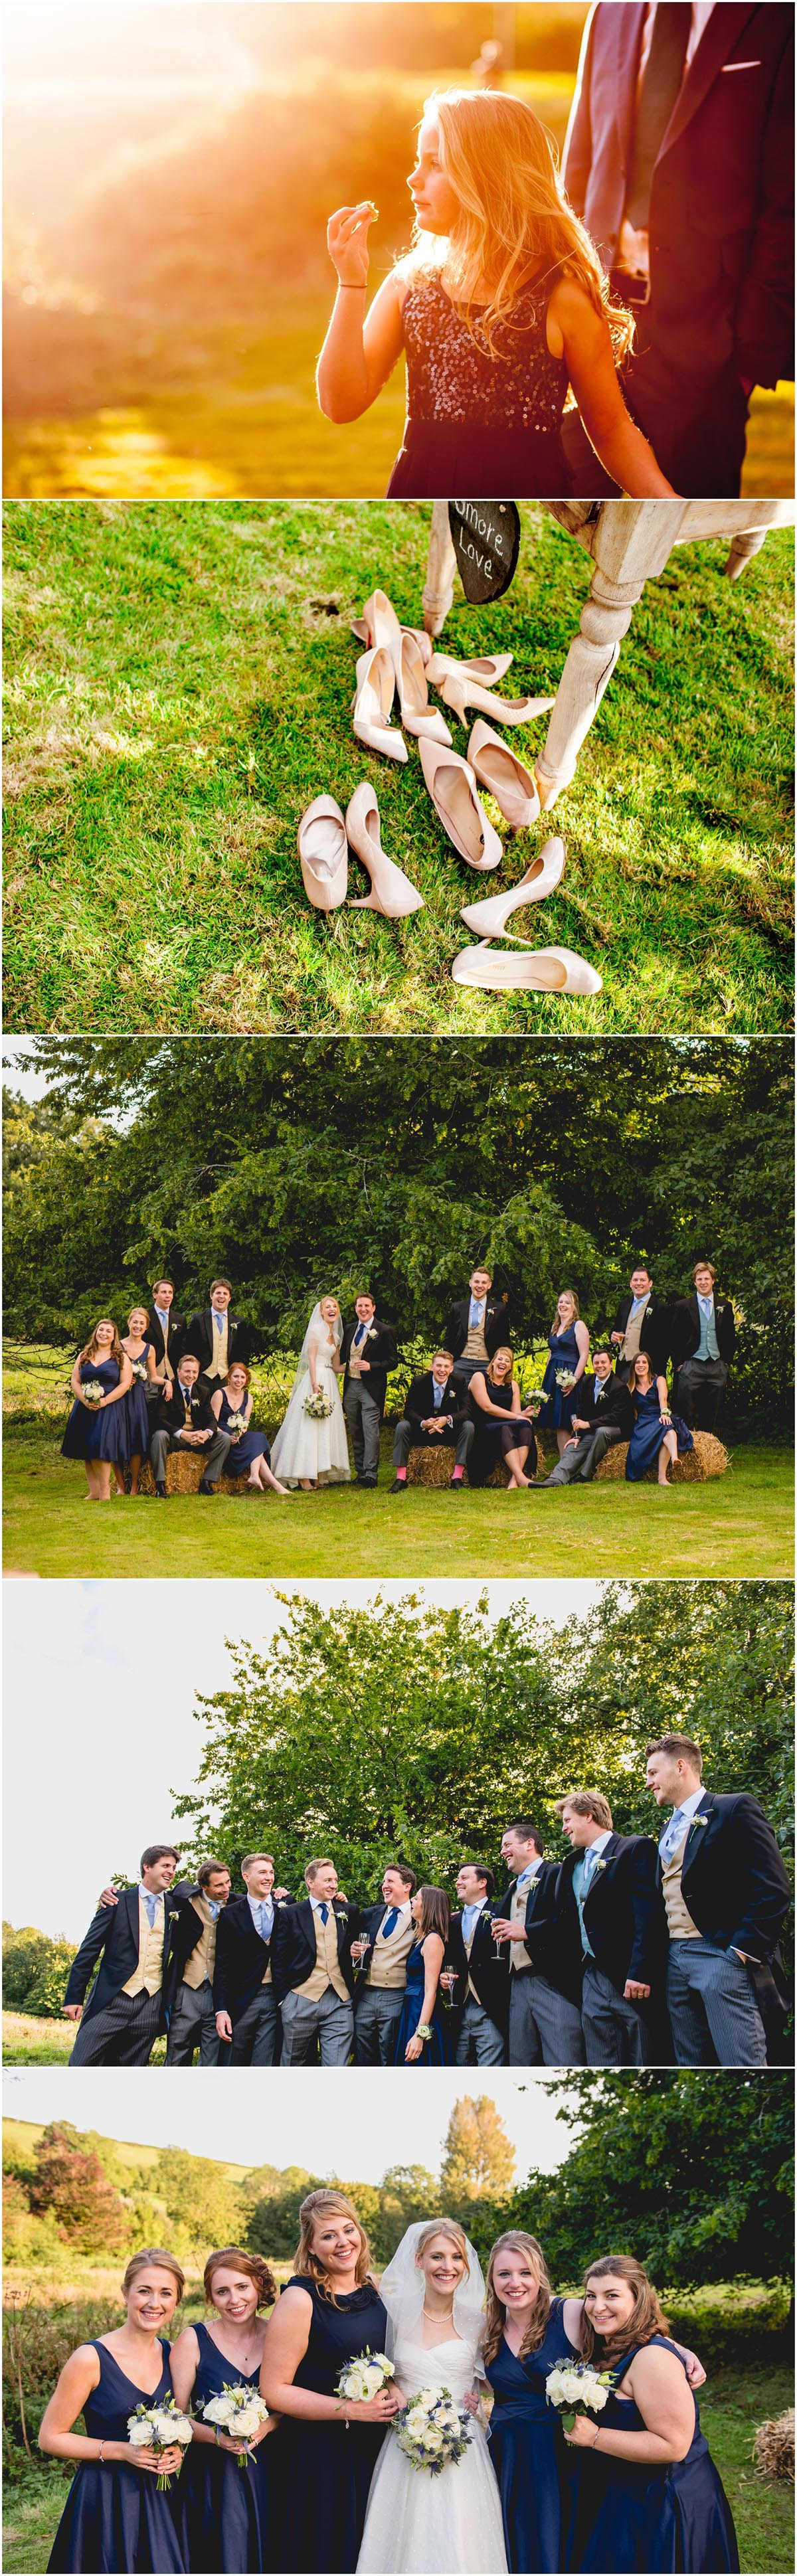 Susie and Ed's Dorset Wedding in Alton Pancras, Dorset, near Cerne Abbas, By Lisa Carpenter Photography, West Midlands, Birmingham based photographer, bridal party on hay bales